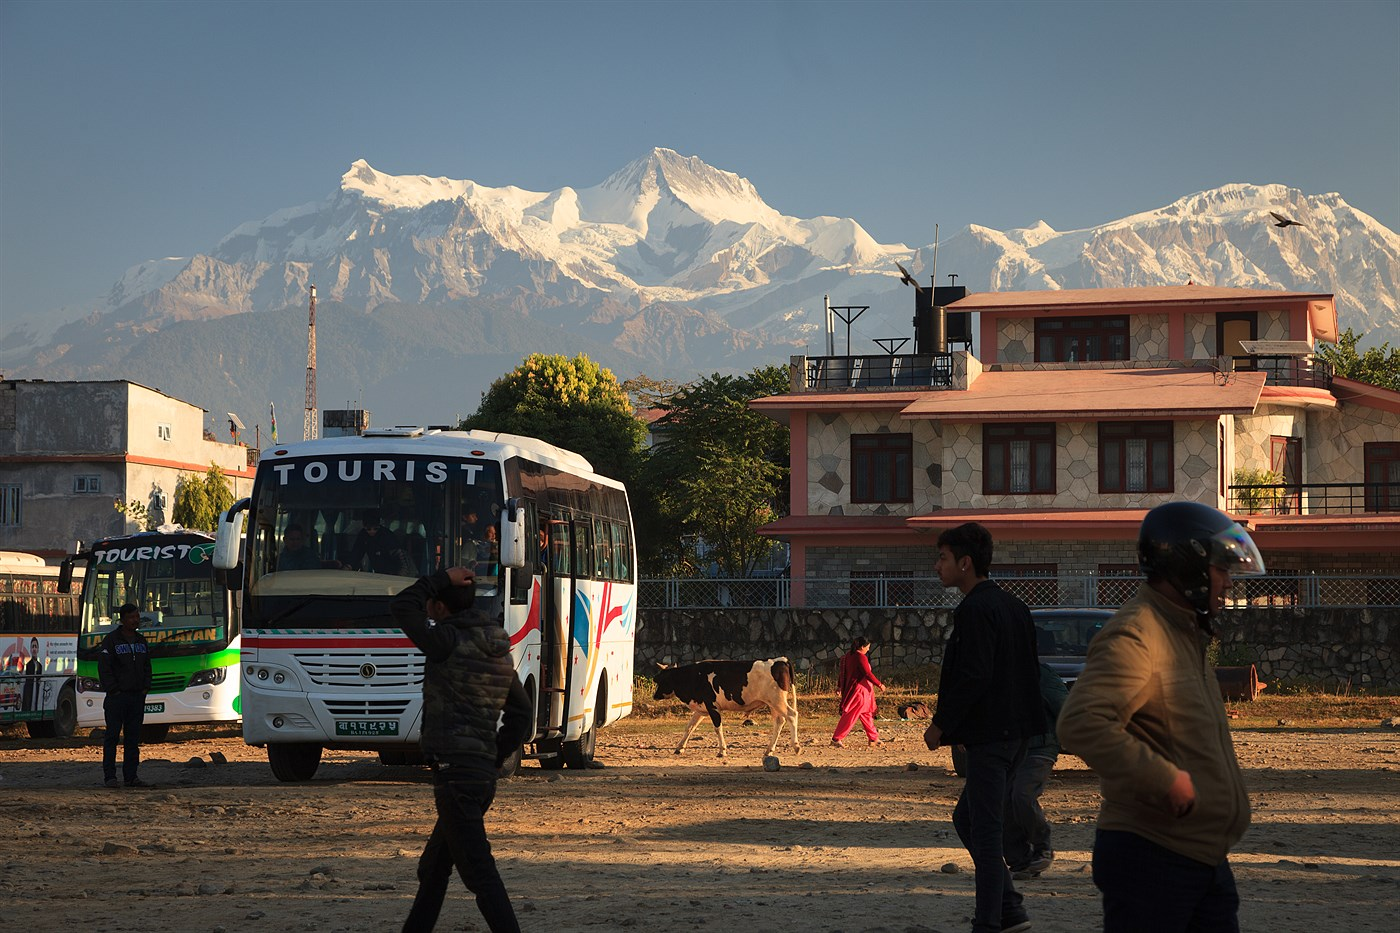 Pokhara bus station, photo